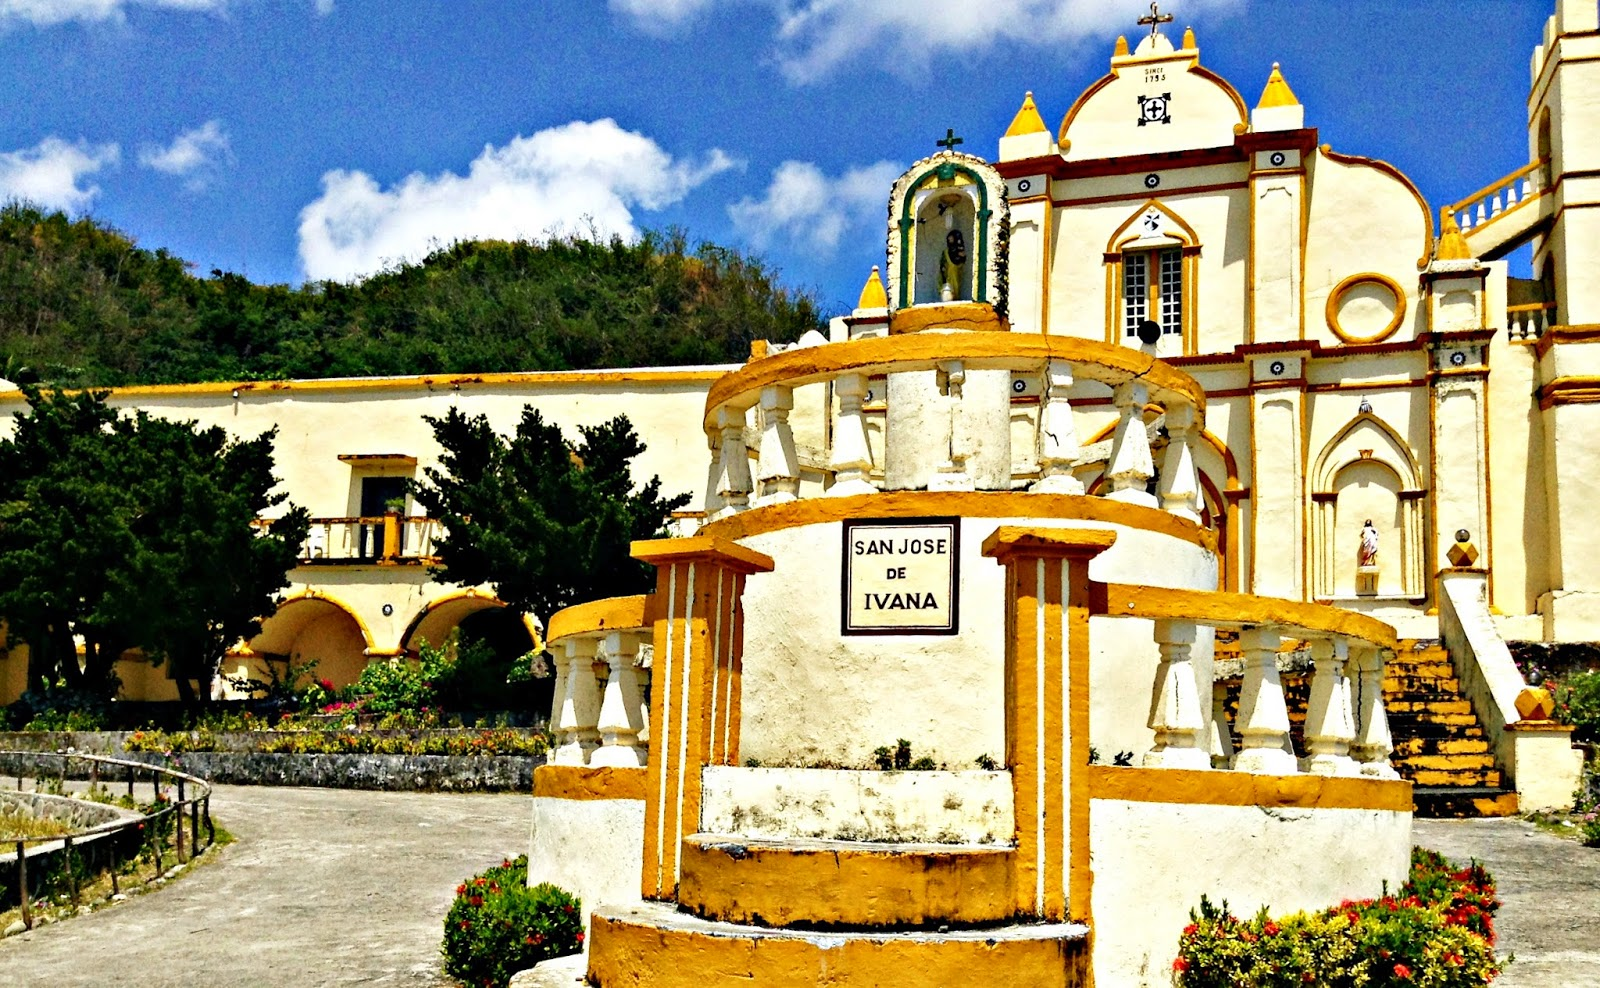 San Jose De Ivana Church in Batanes